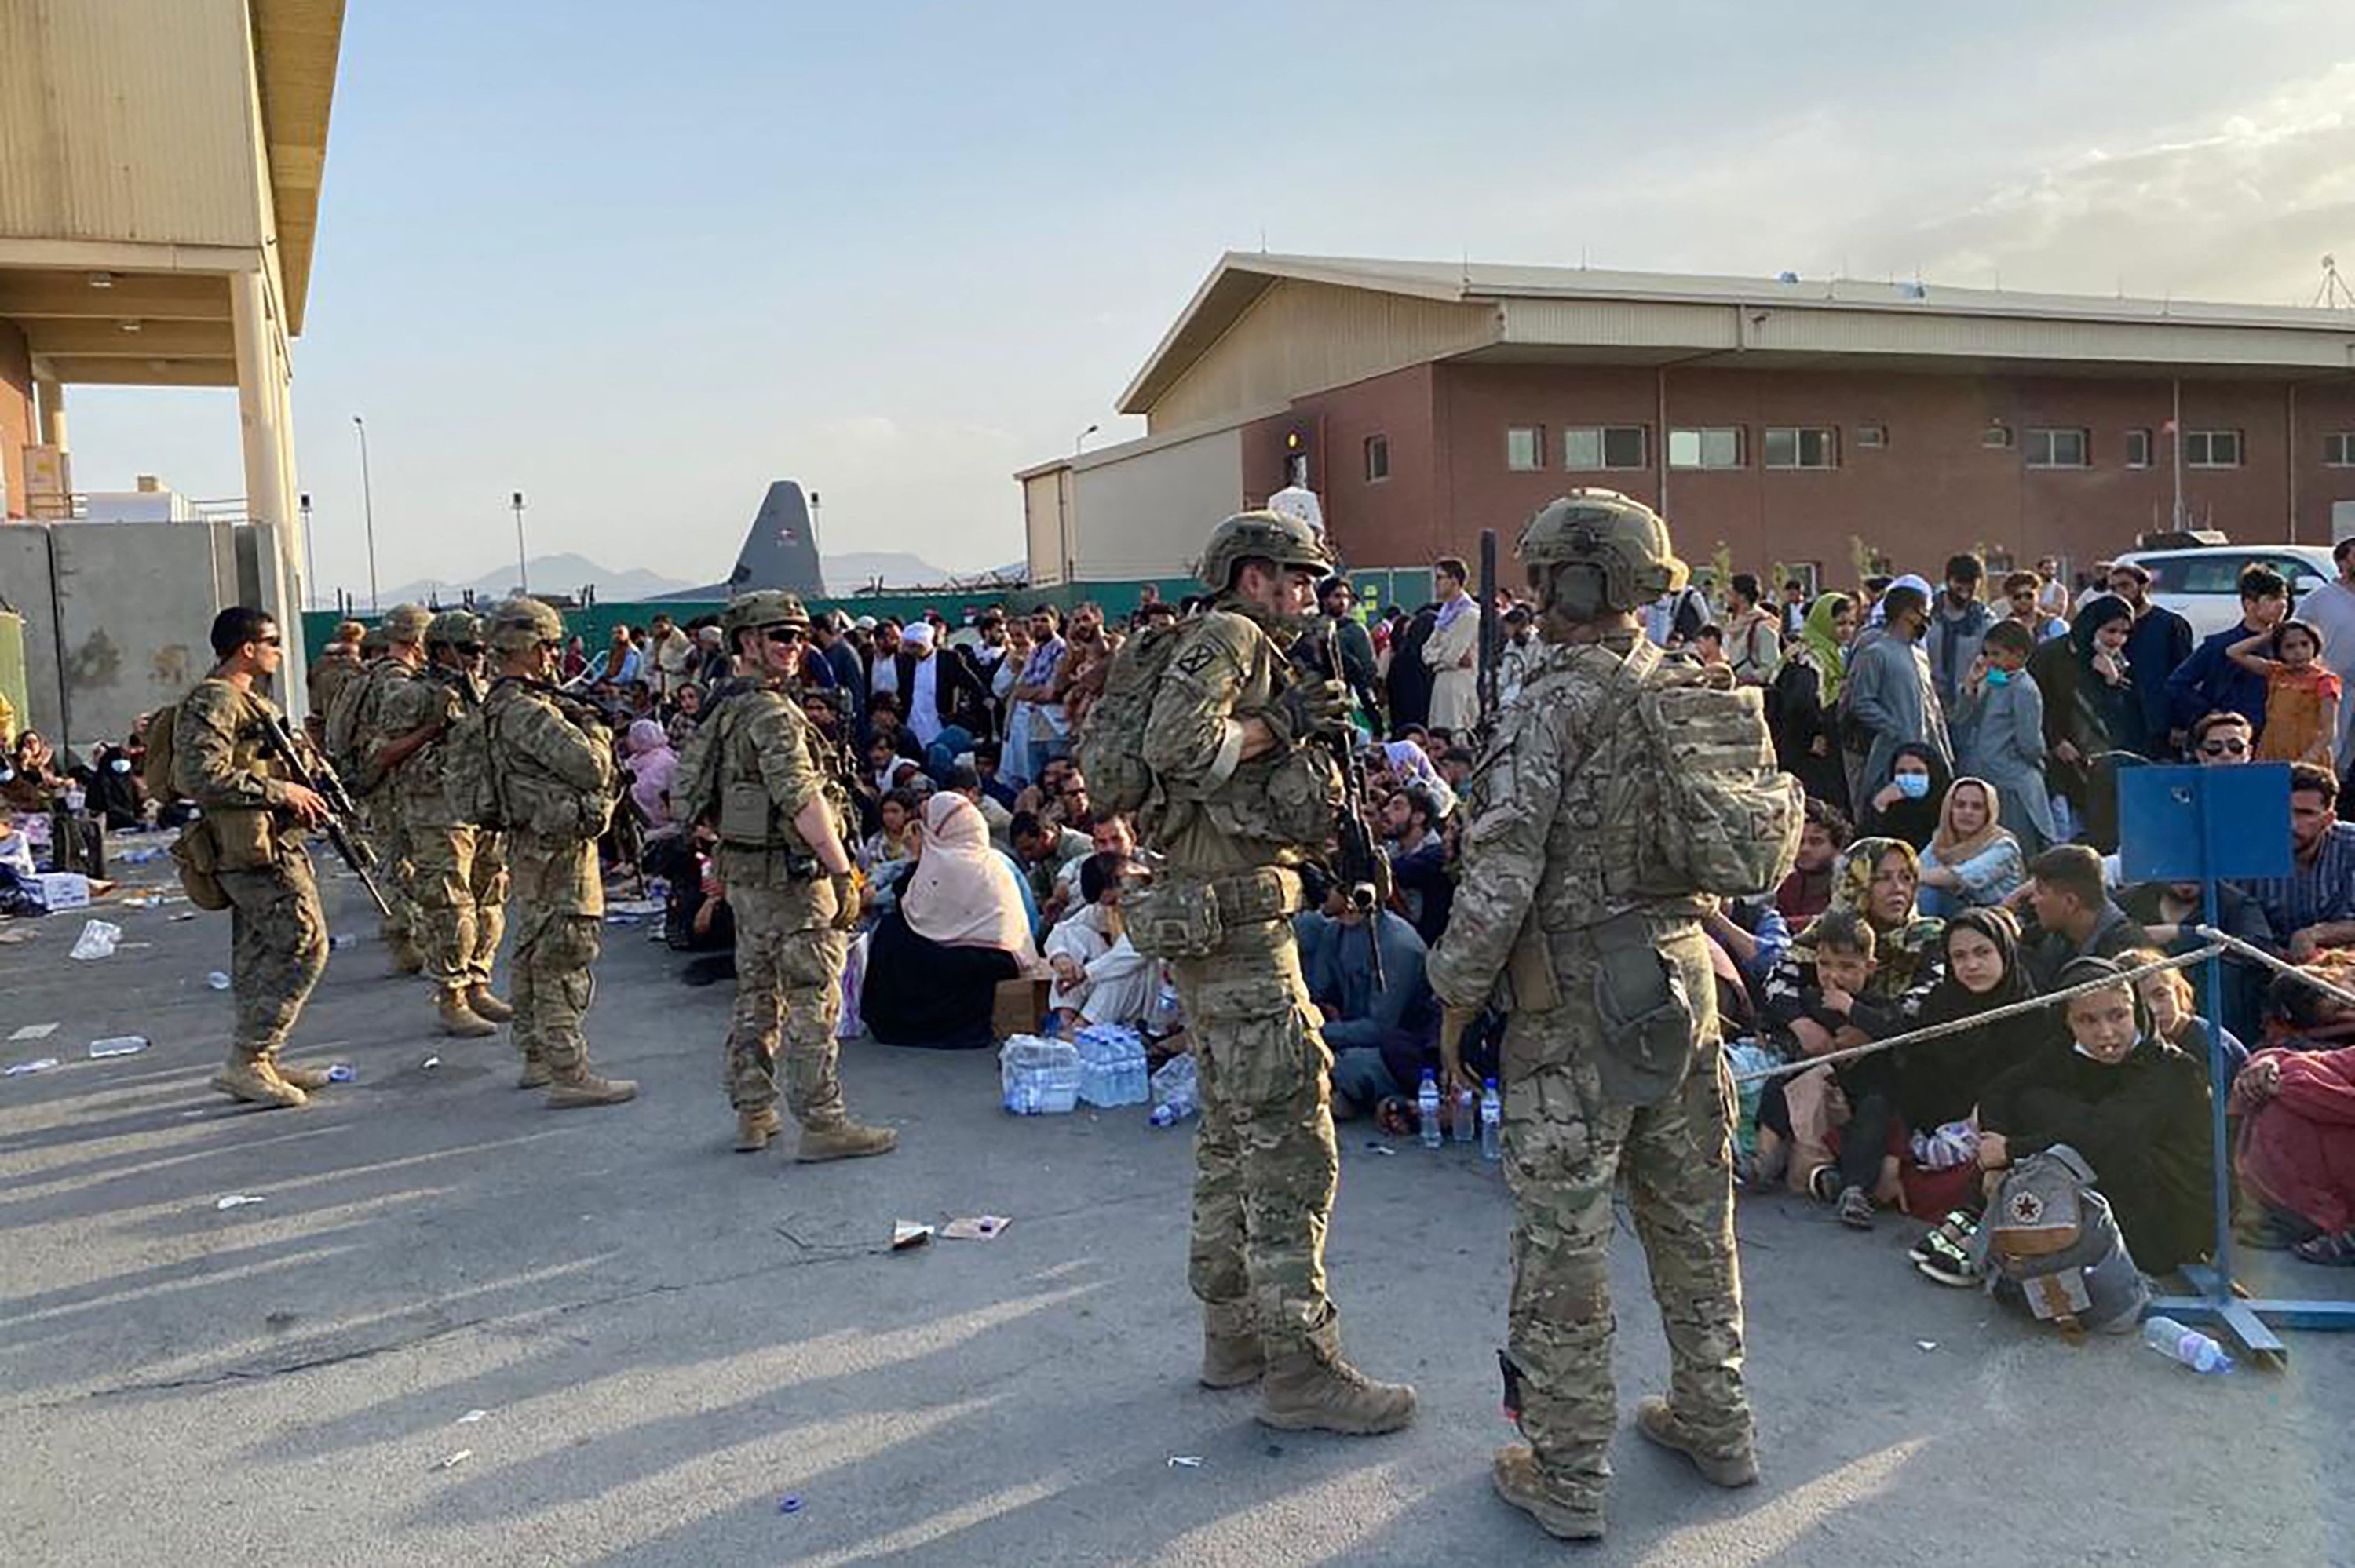 U.S. soldiers stand guard as Afghan people wait to board a U.S. military aircraft to leave Afghanistan after the Taliban's military takeover, at the military airport in Kabul, Afghanistan, Aug. 19, 2021. (Photo by Shakib RAHMANI via AFP)